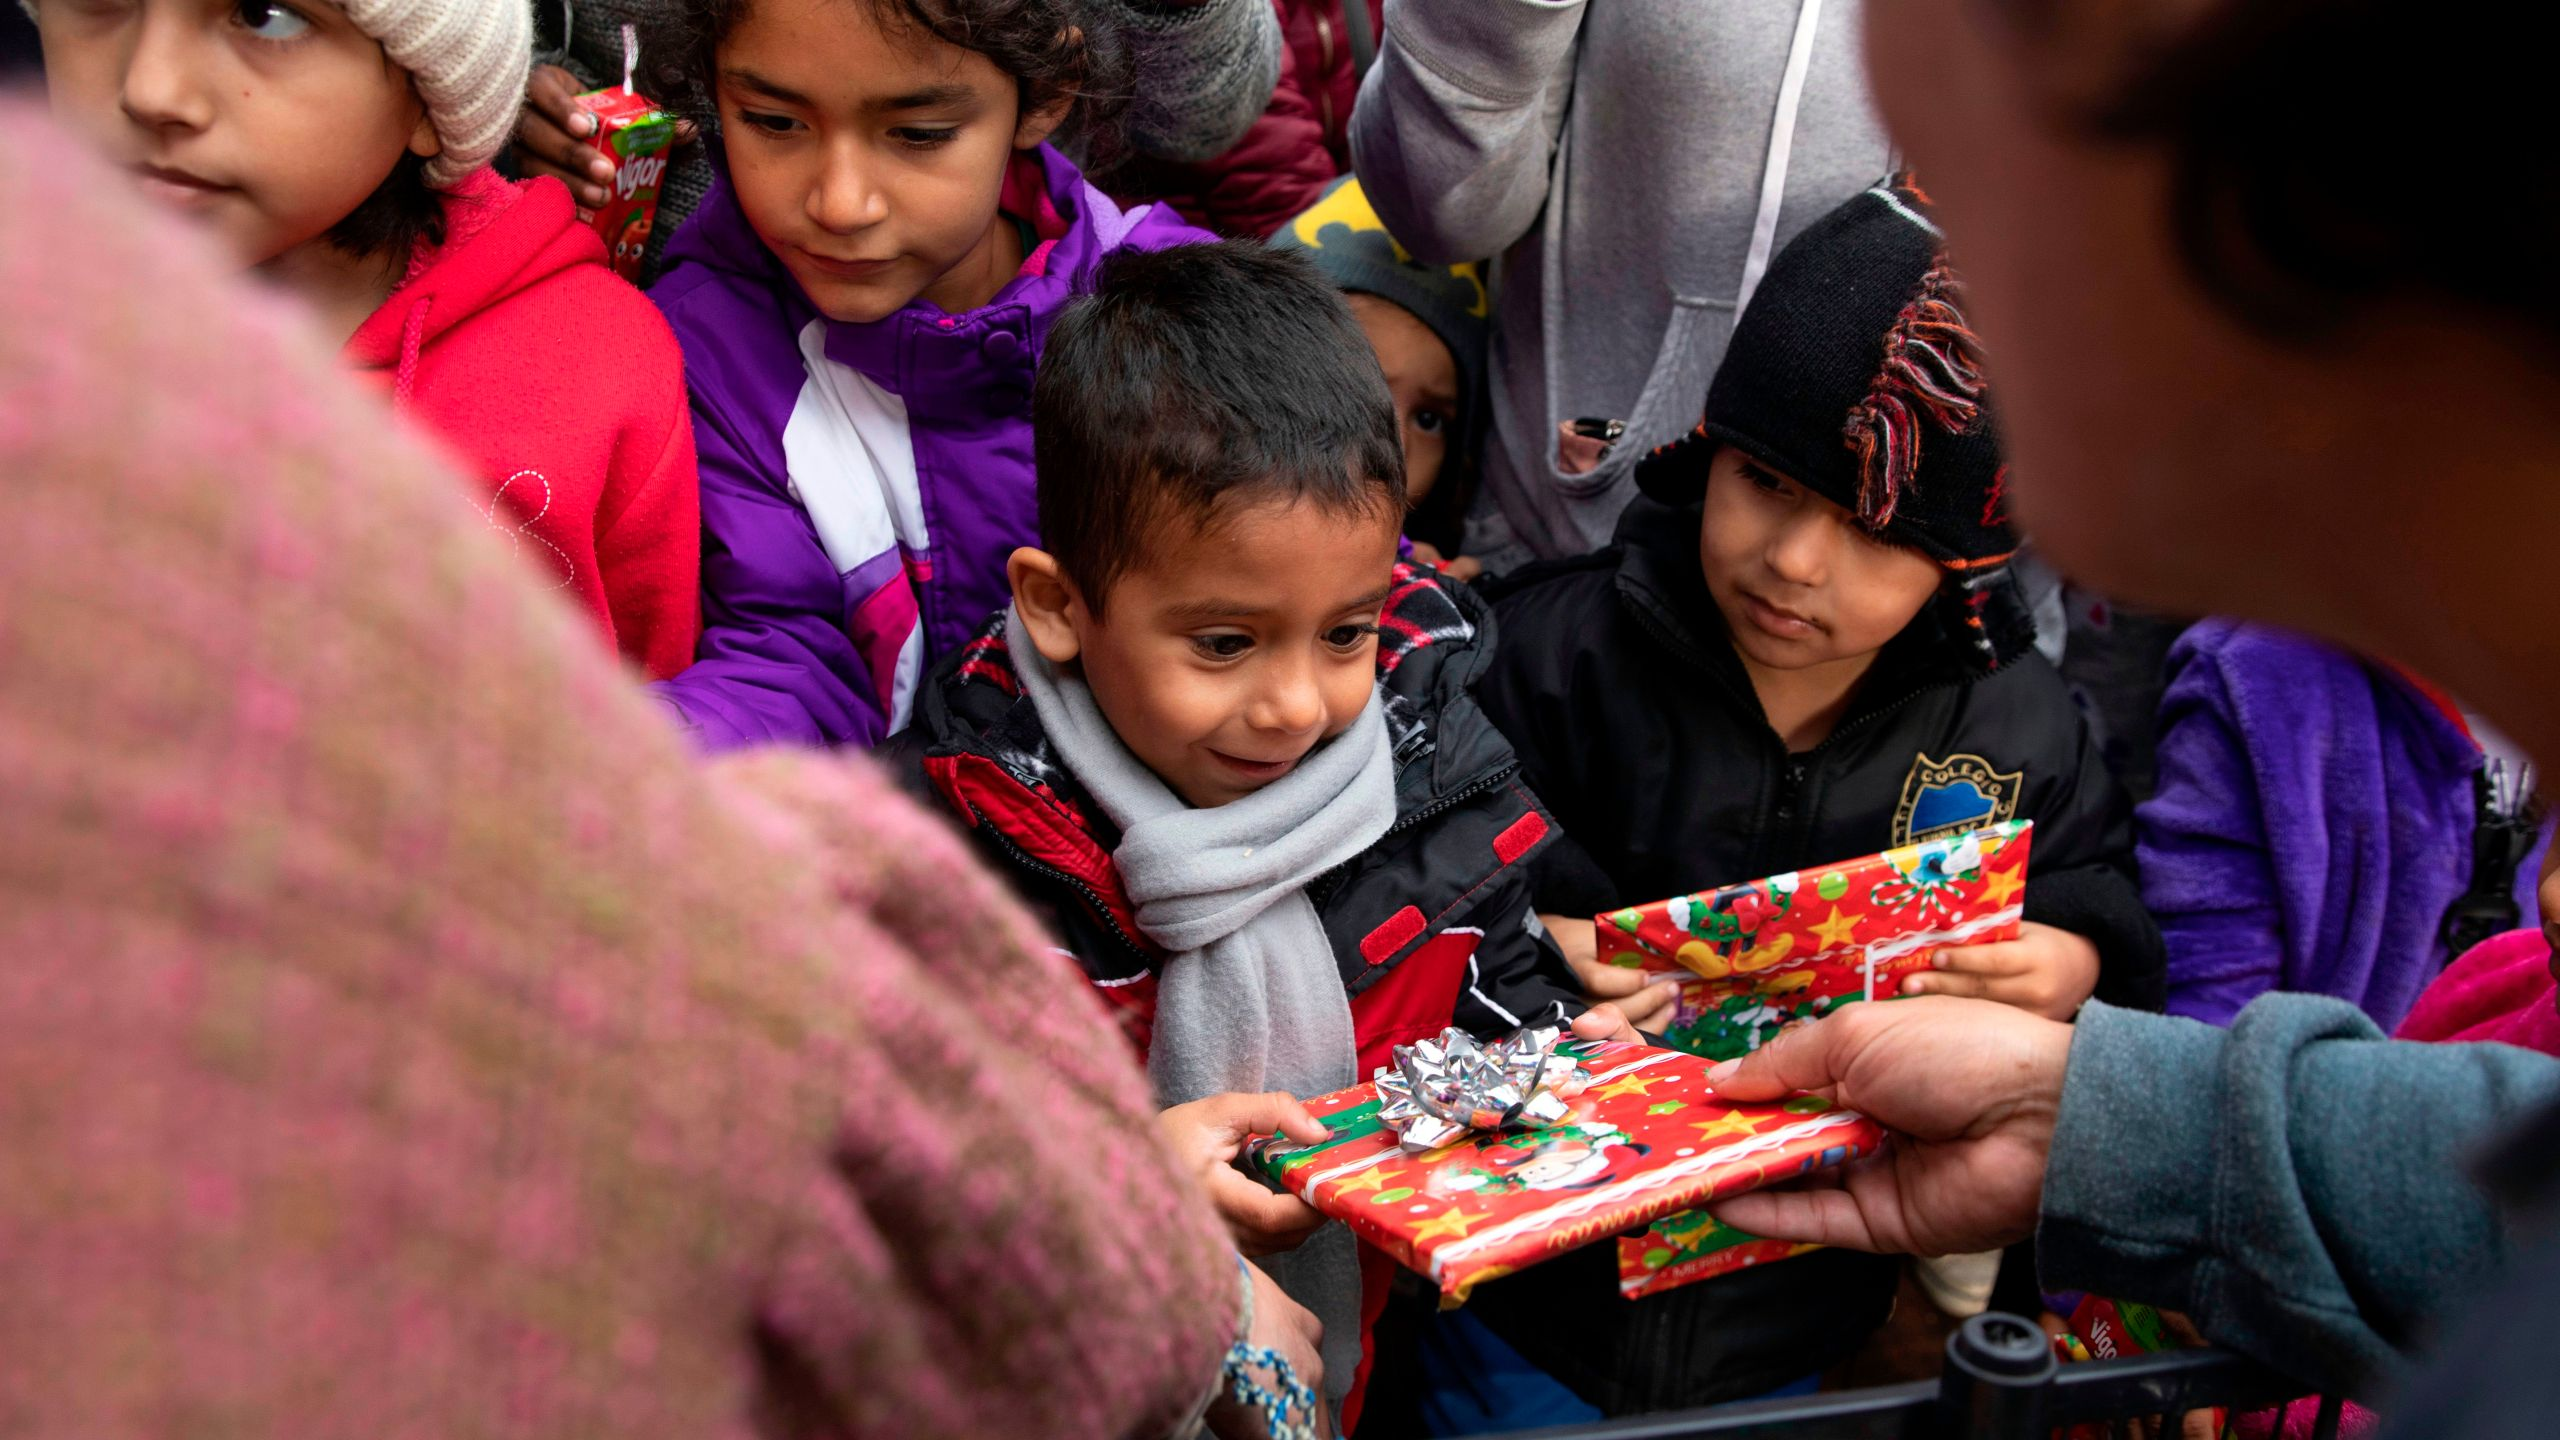 Migrant children receive Christmas presents from a group of law students from California as they wait for humanitarian visas from U.S. migration authorities outside El Chaparral port of entry, in Tijuana on Dec. 24, 2019. (Credit: EDUARDO JARAMILLO CASTRO/AFP via Getty Images)